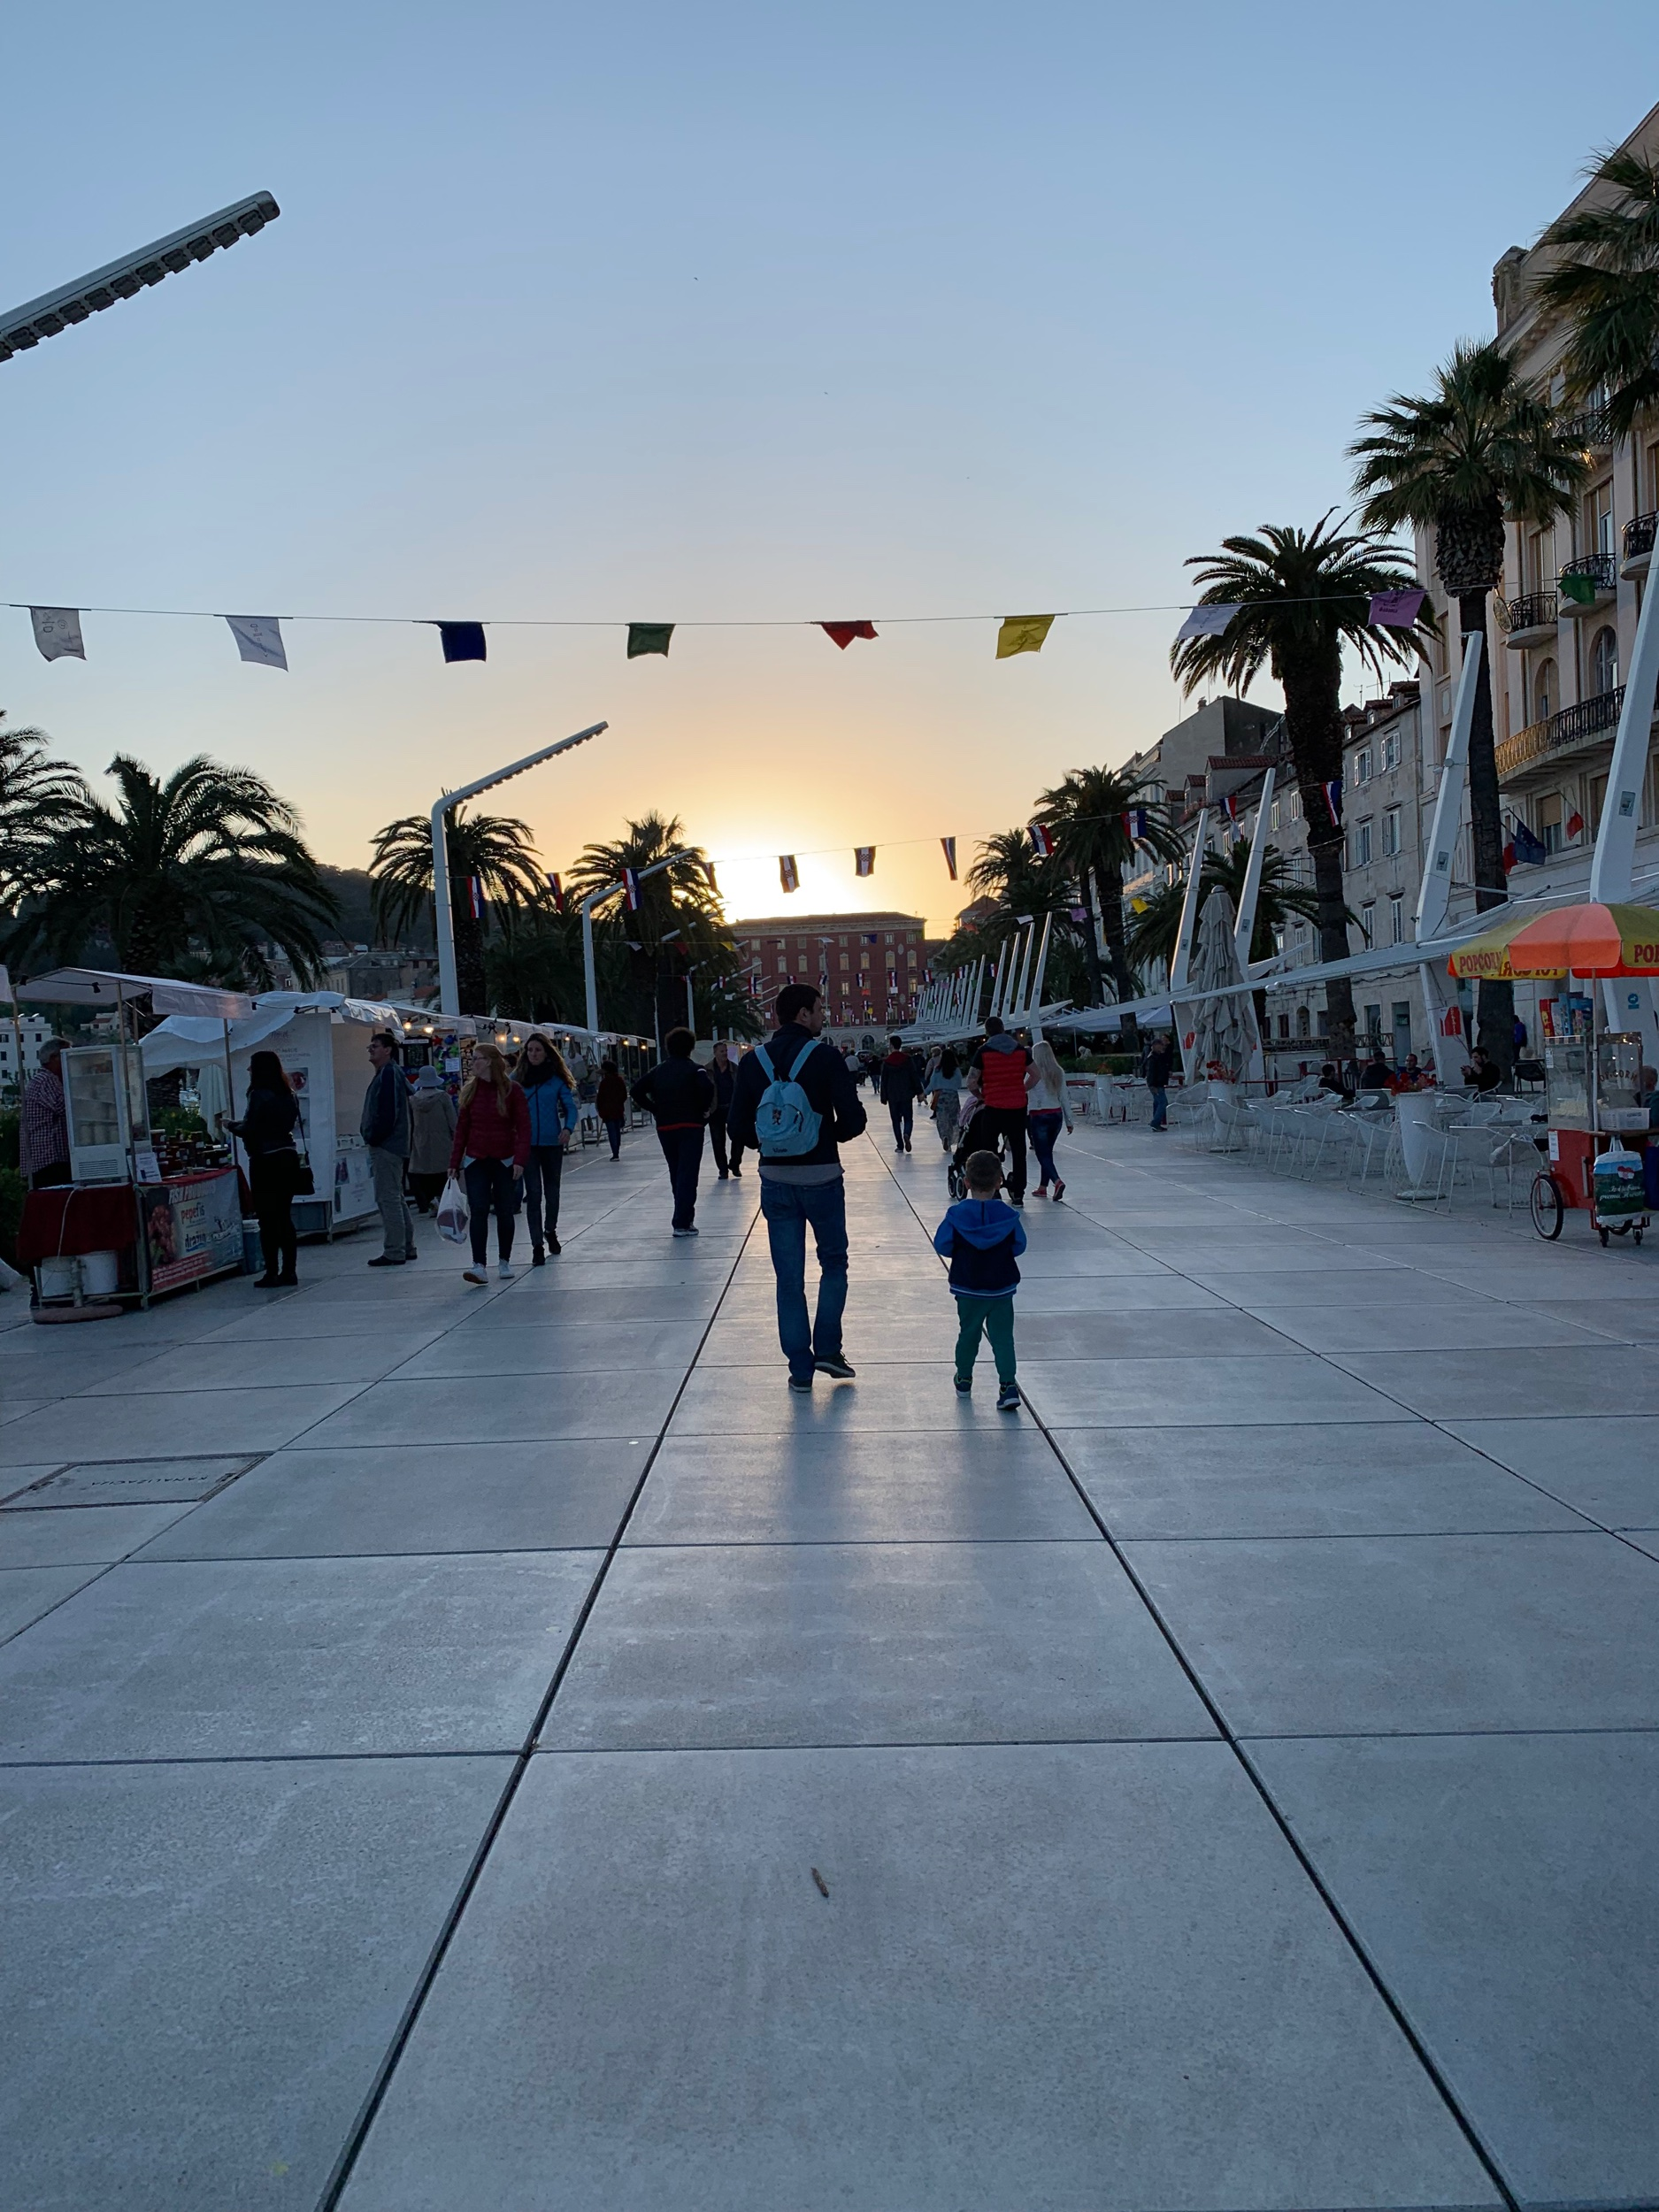 Split's great promenade by the sea and a great place to buy souvenirs. I purchased a wallet here that I loved a little too much. Someone stole it while I was taking a ferry from Albania to Italy. I dream about it still and think about returning to Split soon just to buy a new one.